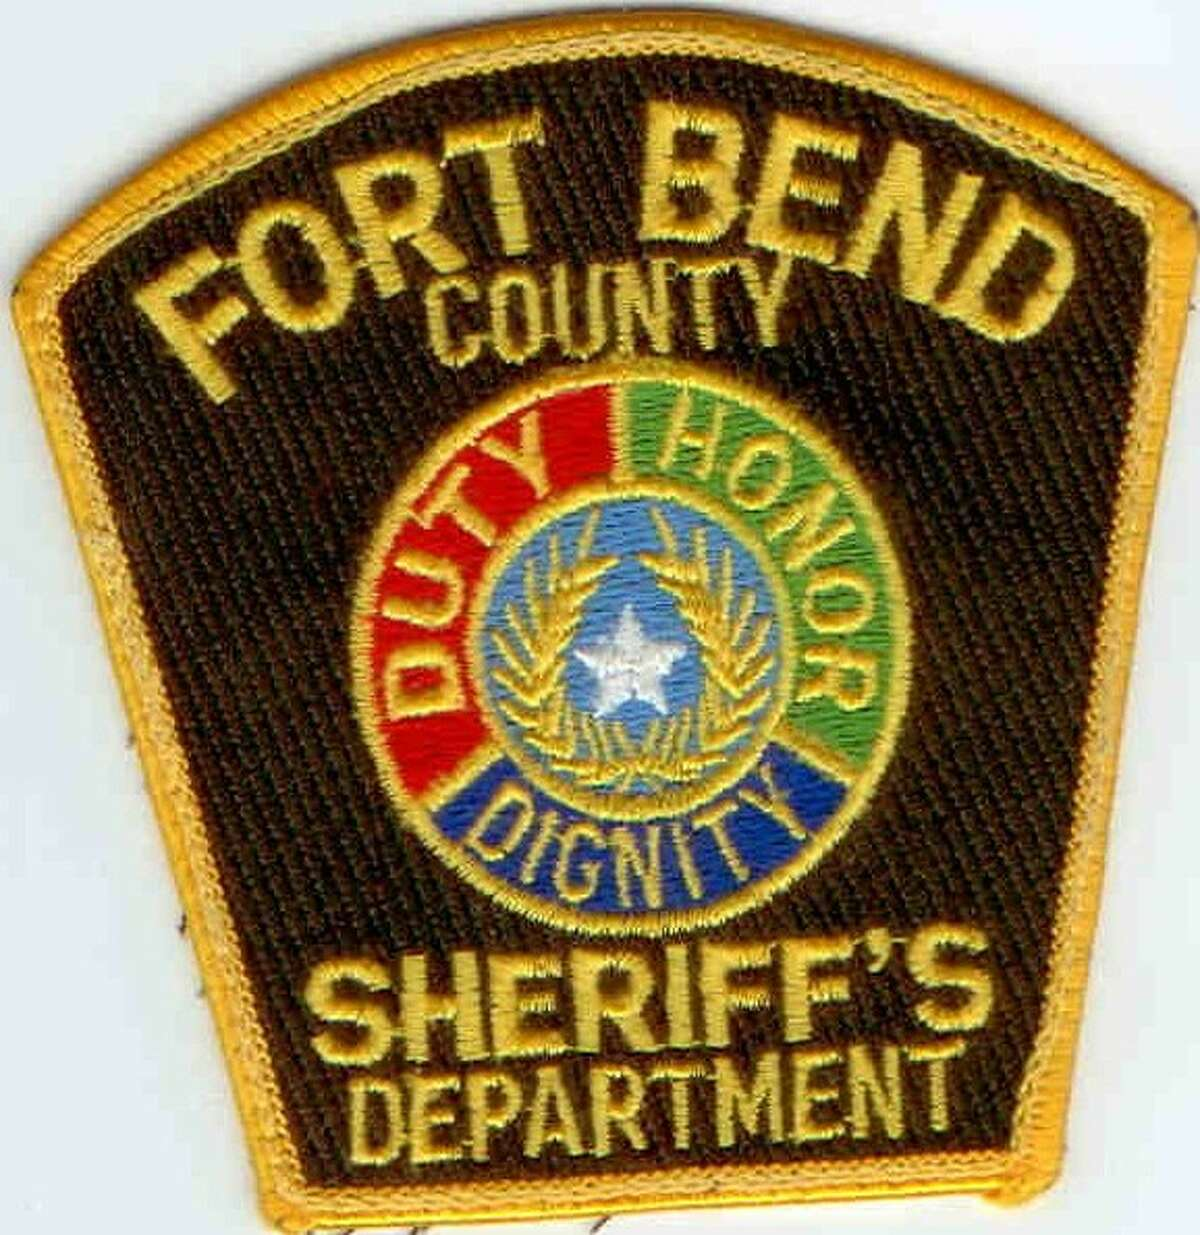 Fort Bend Sheriff's Office - Wednesday calls for Sugar Land/Missouri City